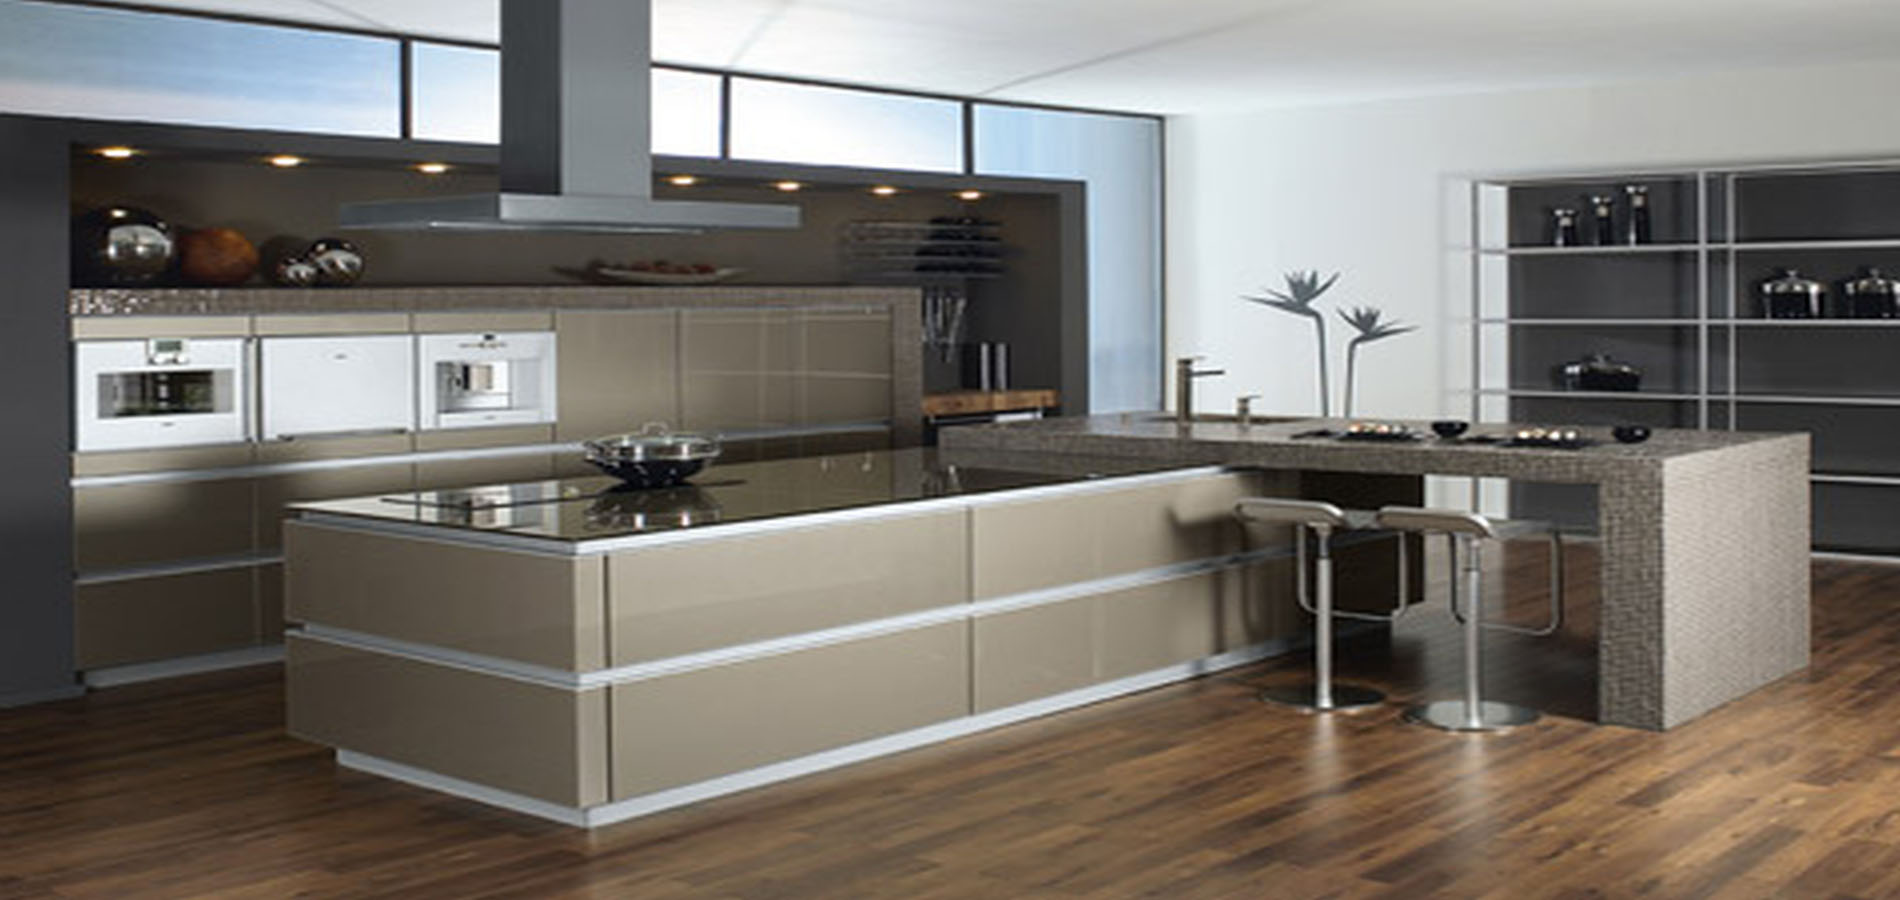 Kitchen Cabinets Manufacturers Cheap Contemporary Kitchen Cabinets Manufacturers